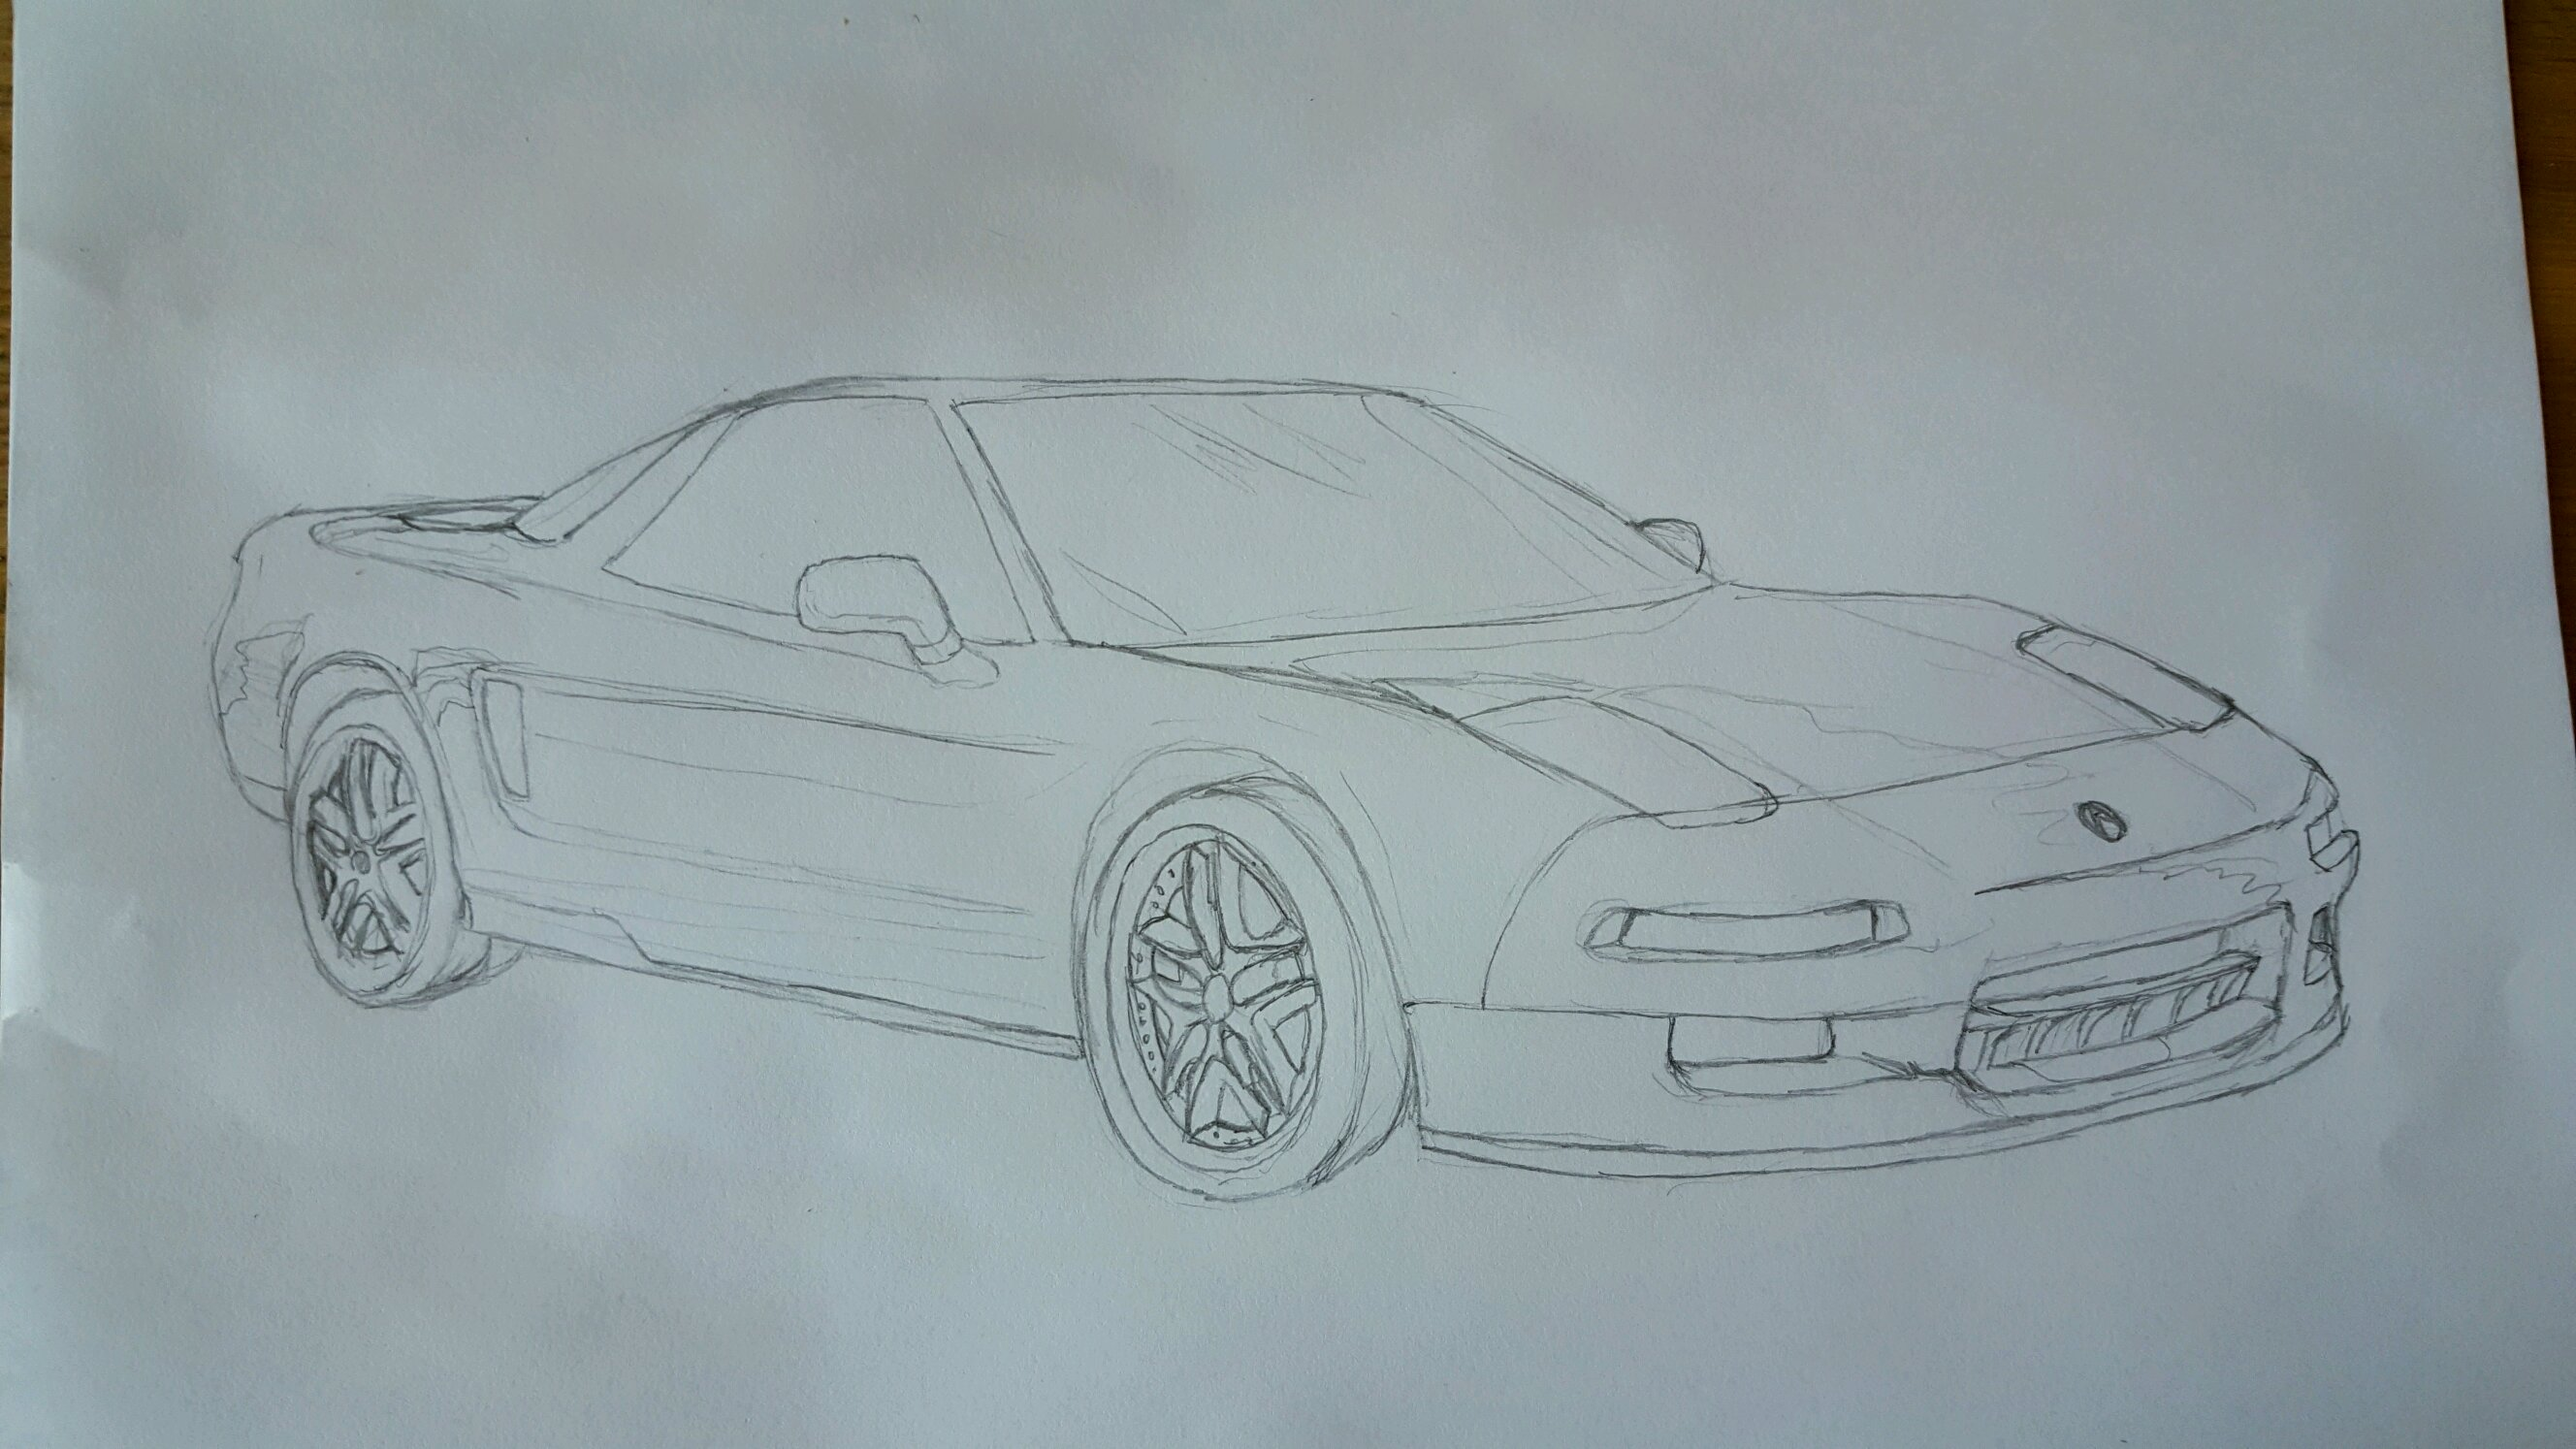 Heres A Quick Sketch Of The 1995 Acura Nsx Quick Means A Little Sloppy Lol So Far I Also Have The Base Shading Down Its Harder Then I Expected Spent A Lot